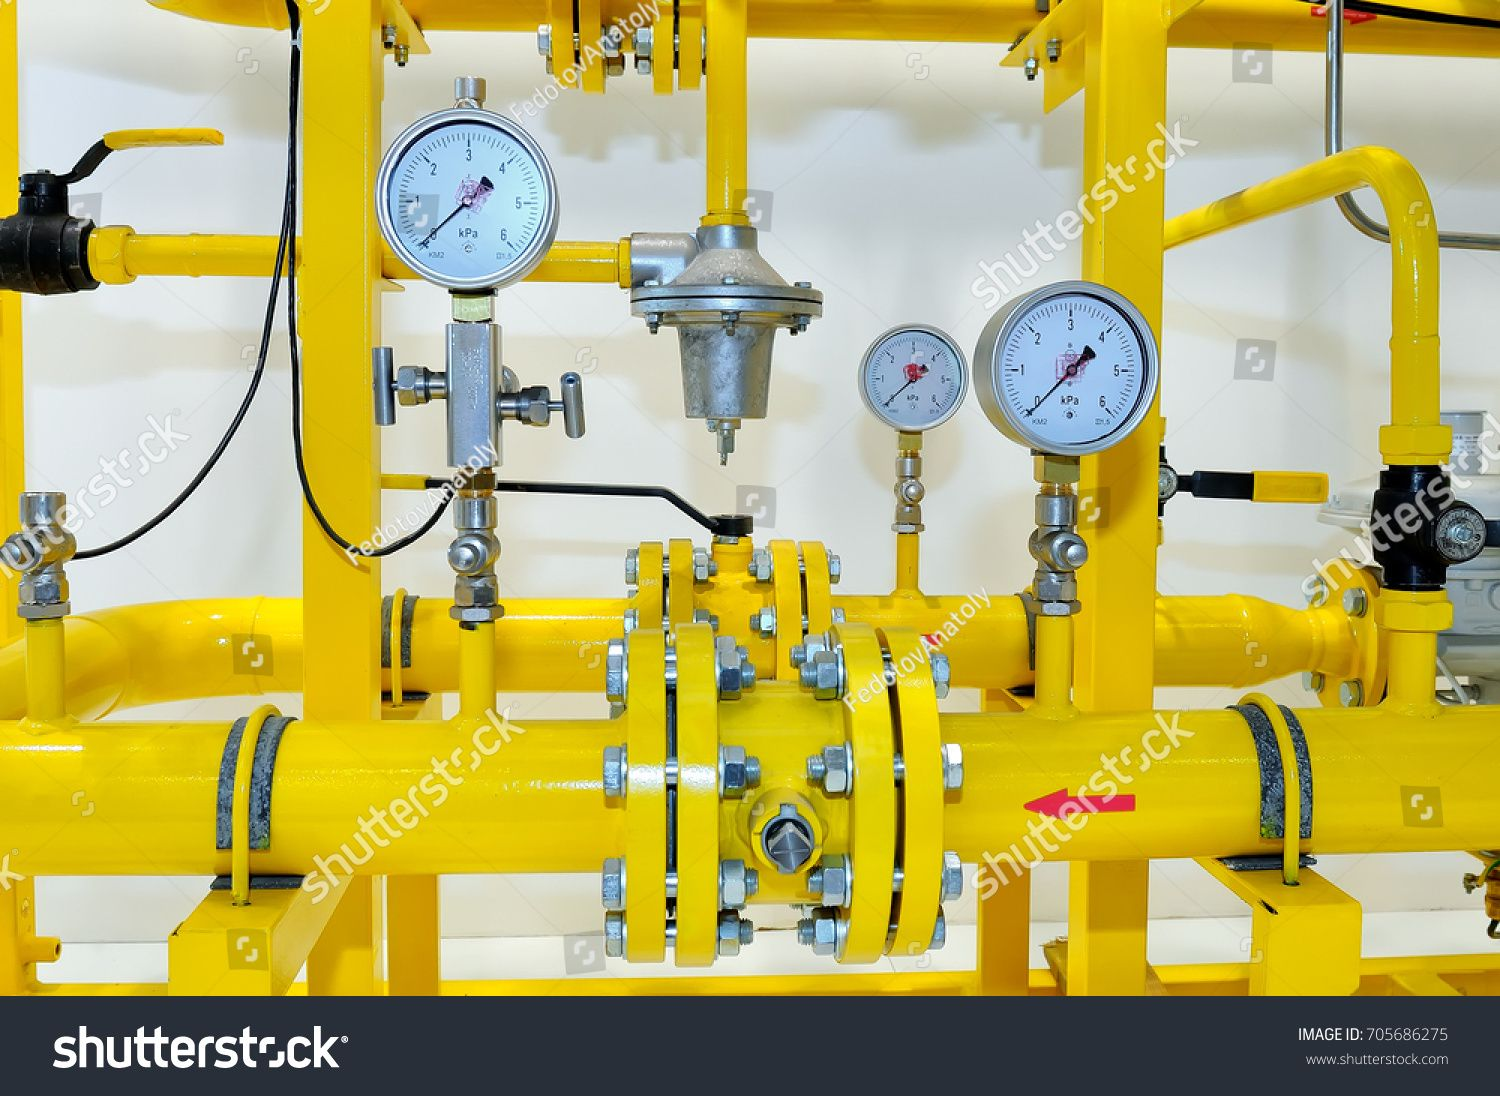 Pressure Meters On Natural Gas Pipeline Royalty Free Image Photo In 2020 Gas Pipeline Stock Photos Gas